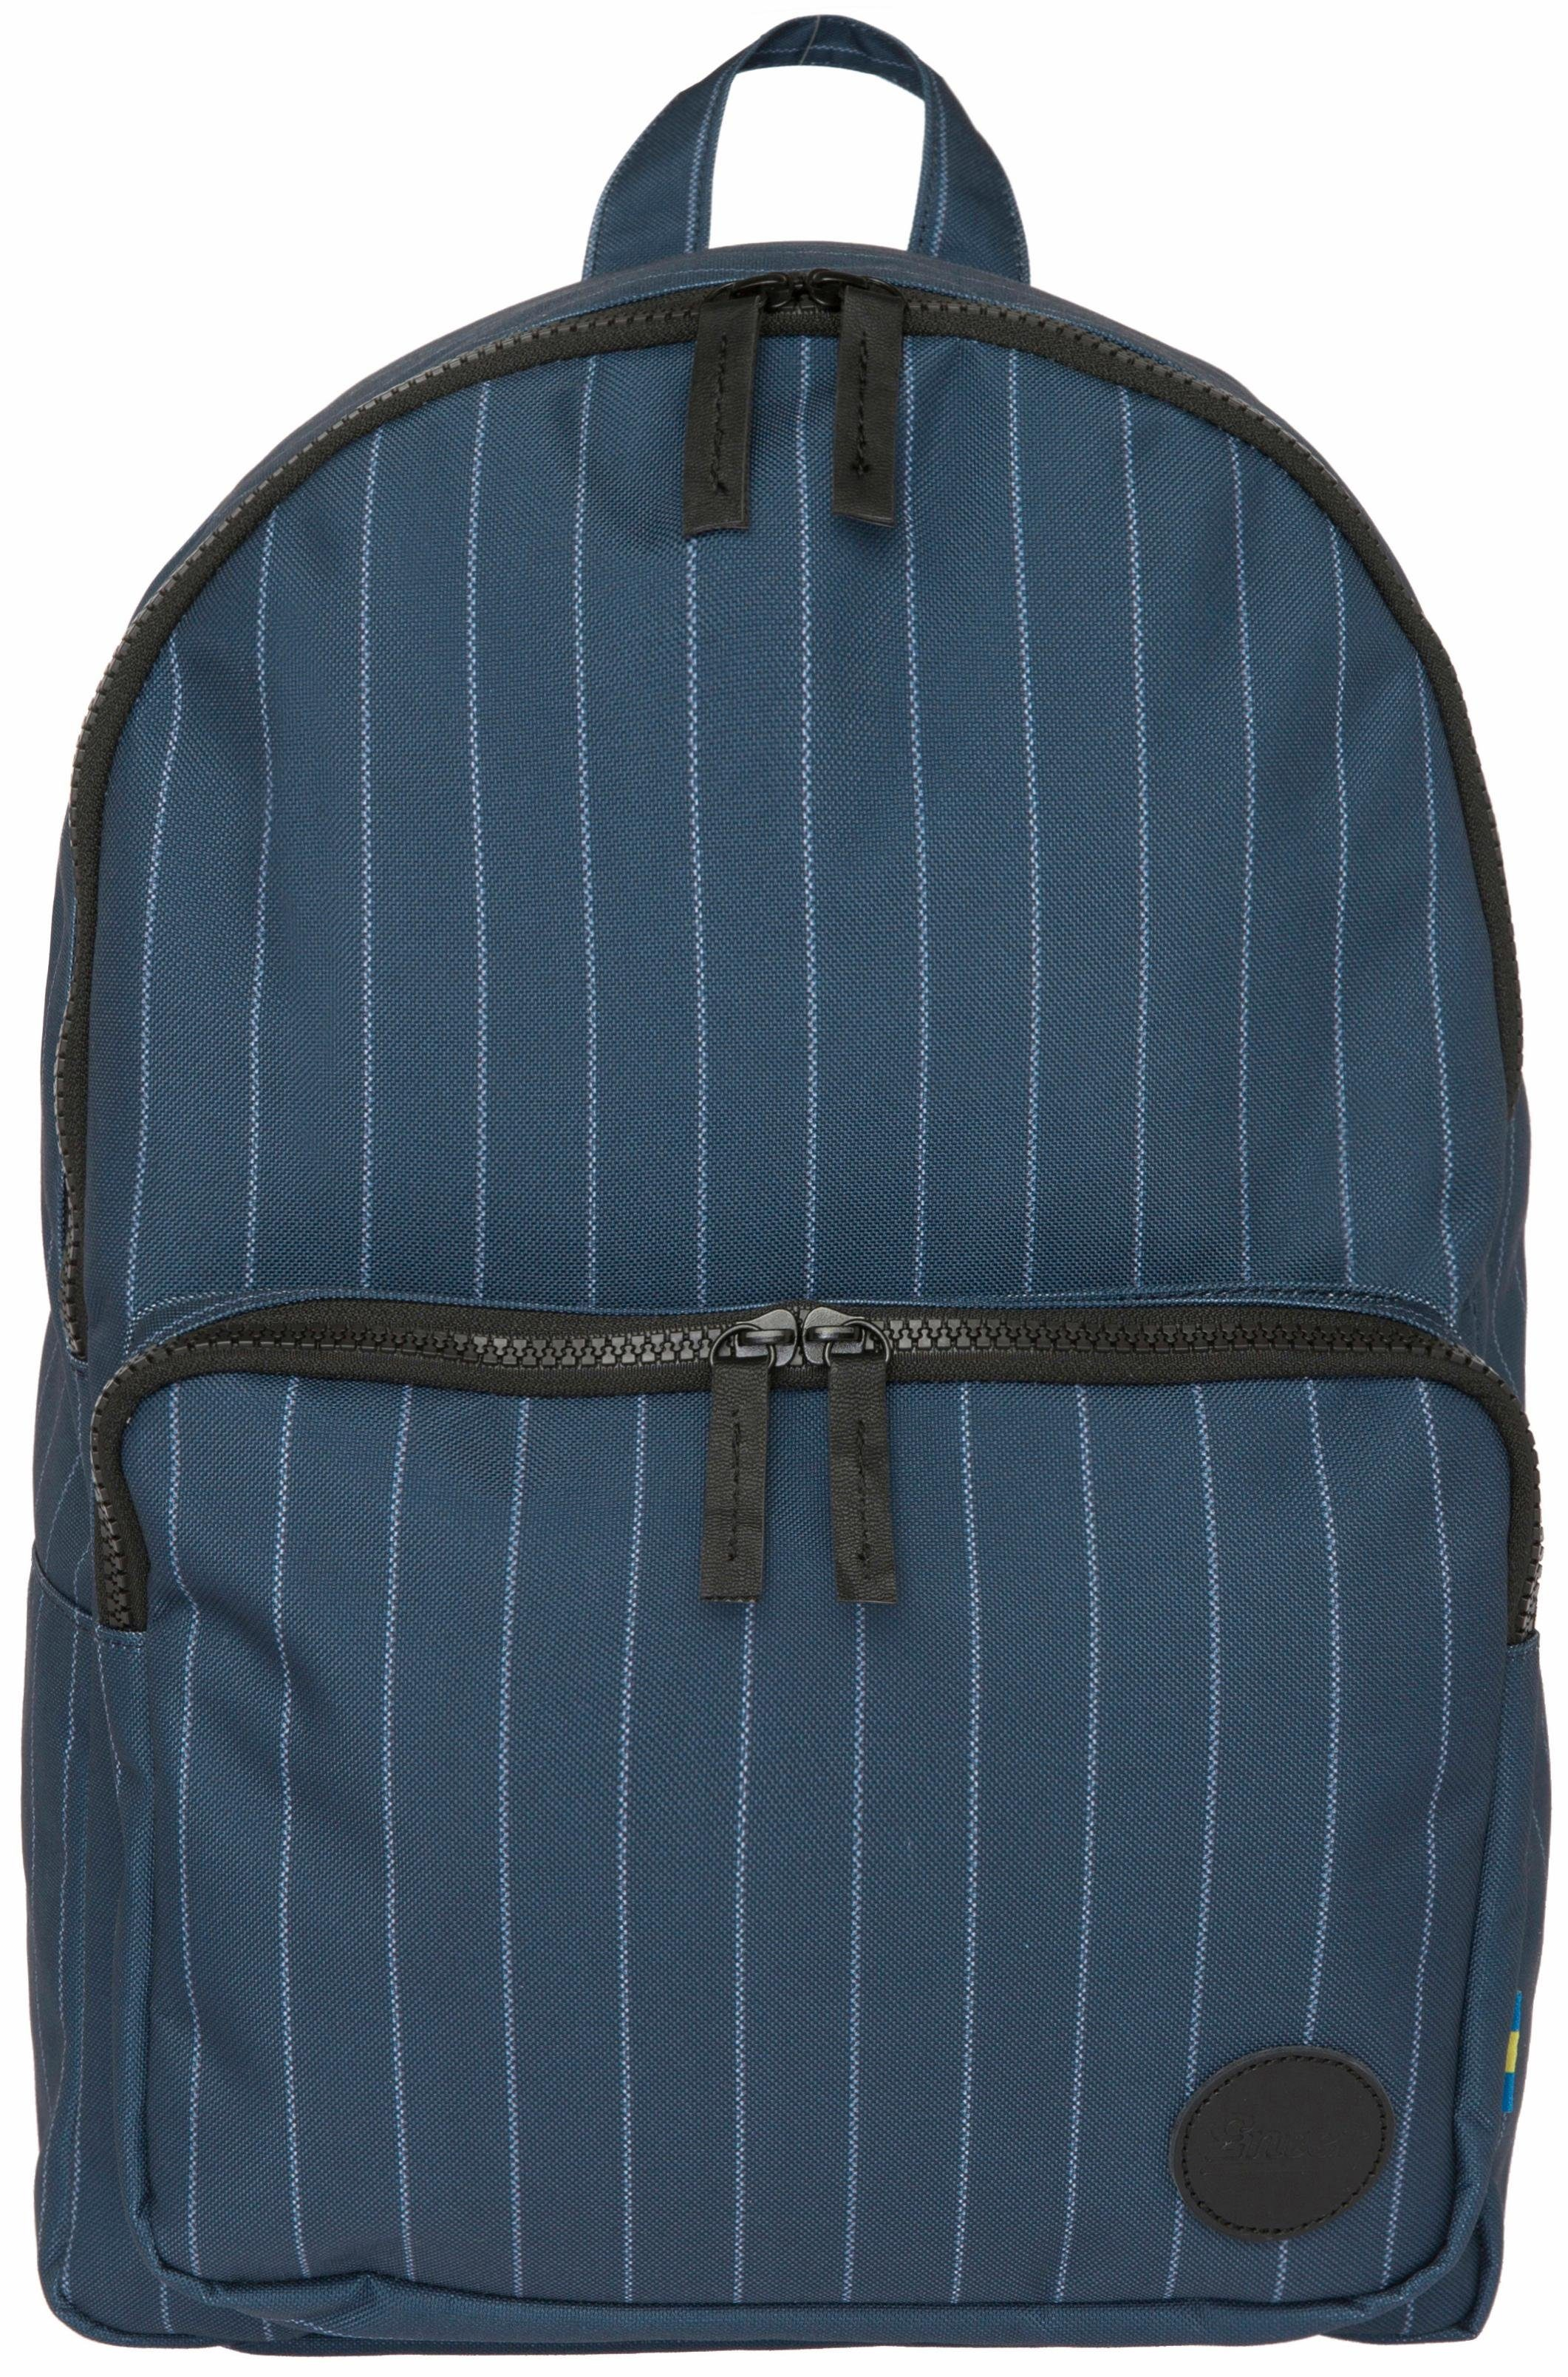 Enter Rucksack mit Laptopfach, »LS Gym Backpack Mini, Navy/White«